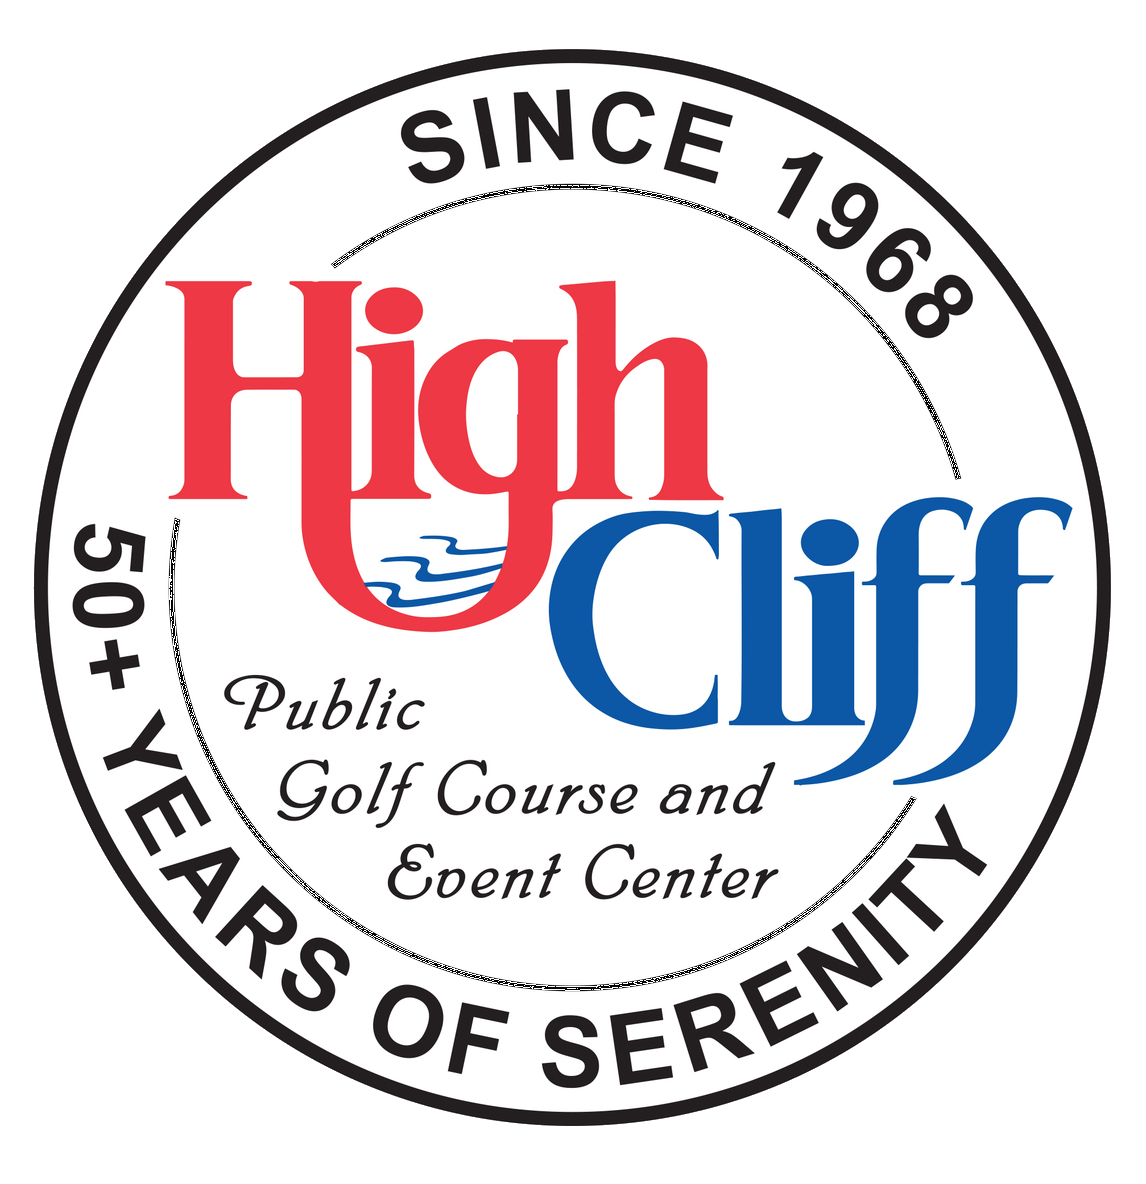 High Cliff Golf & Event Center